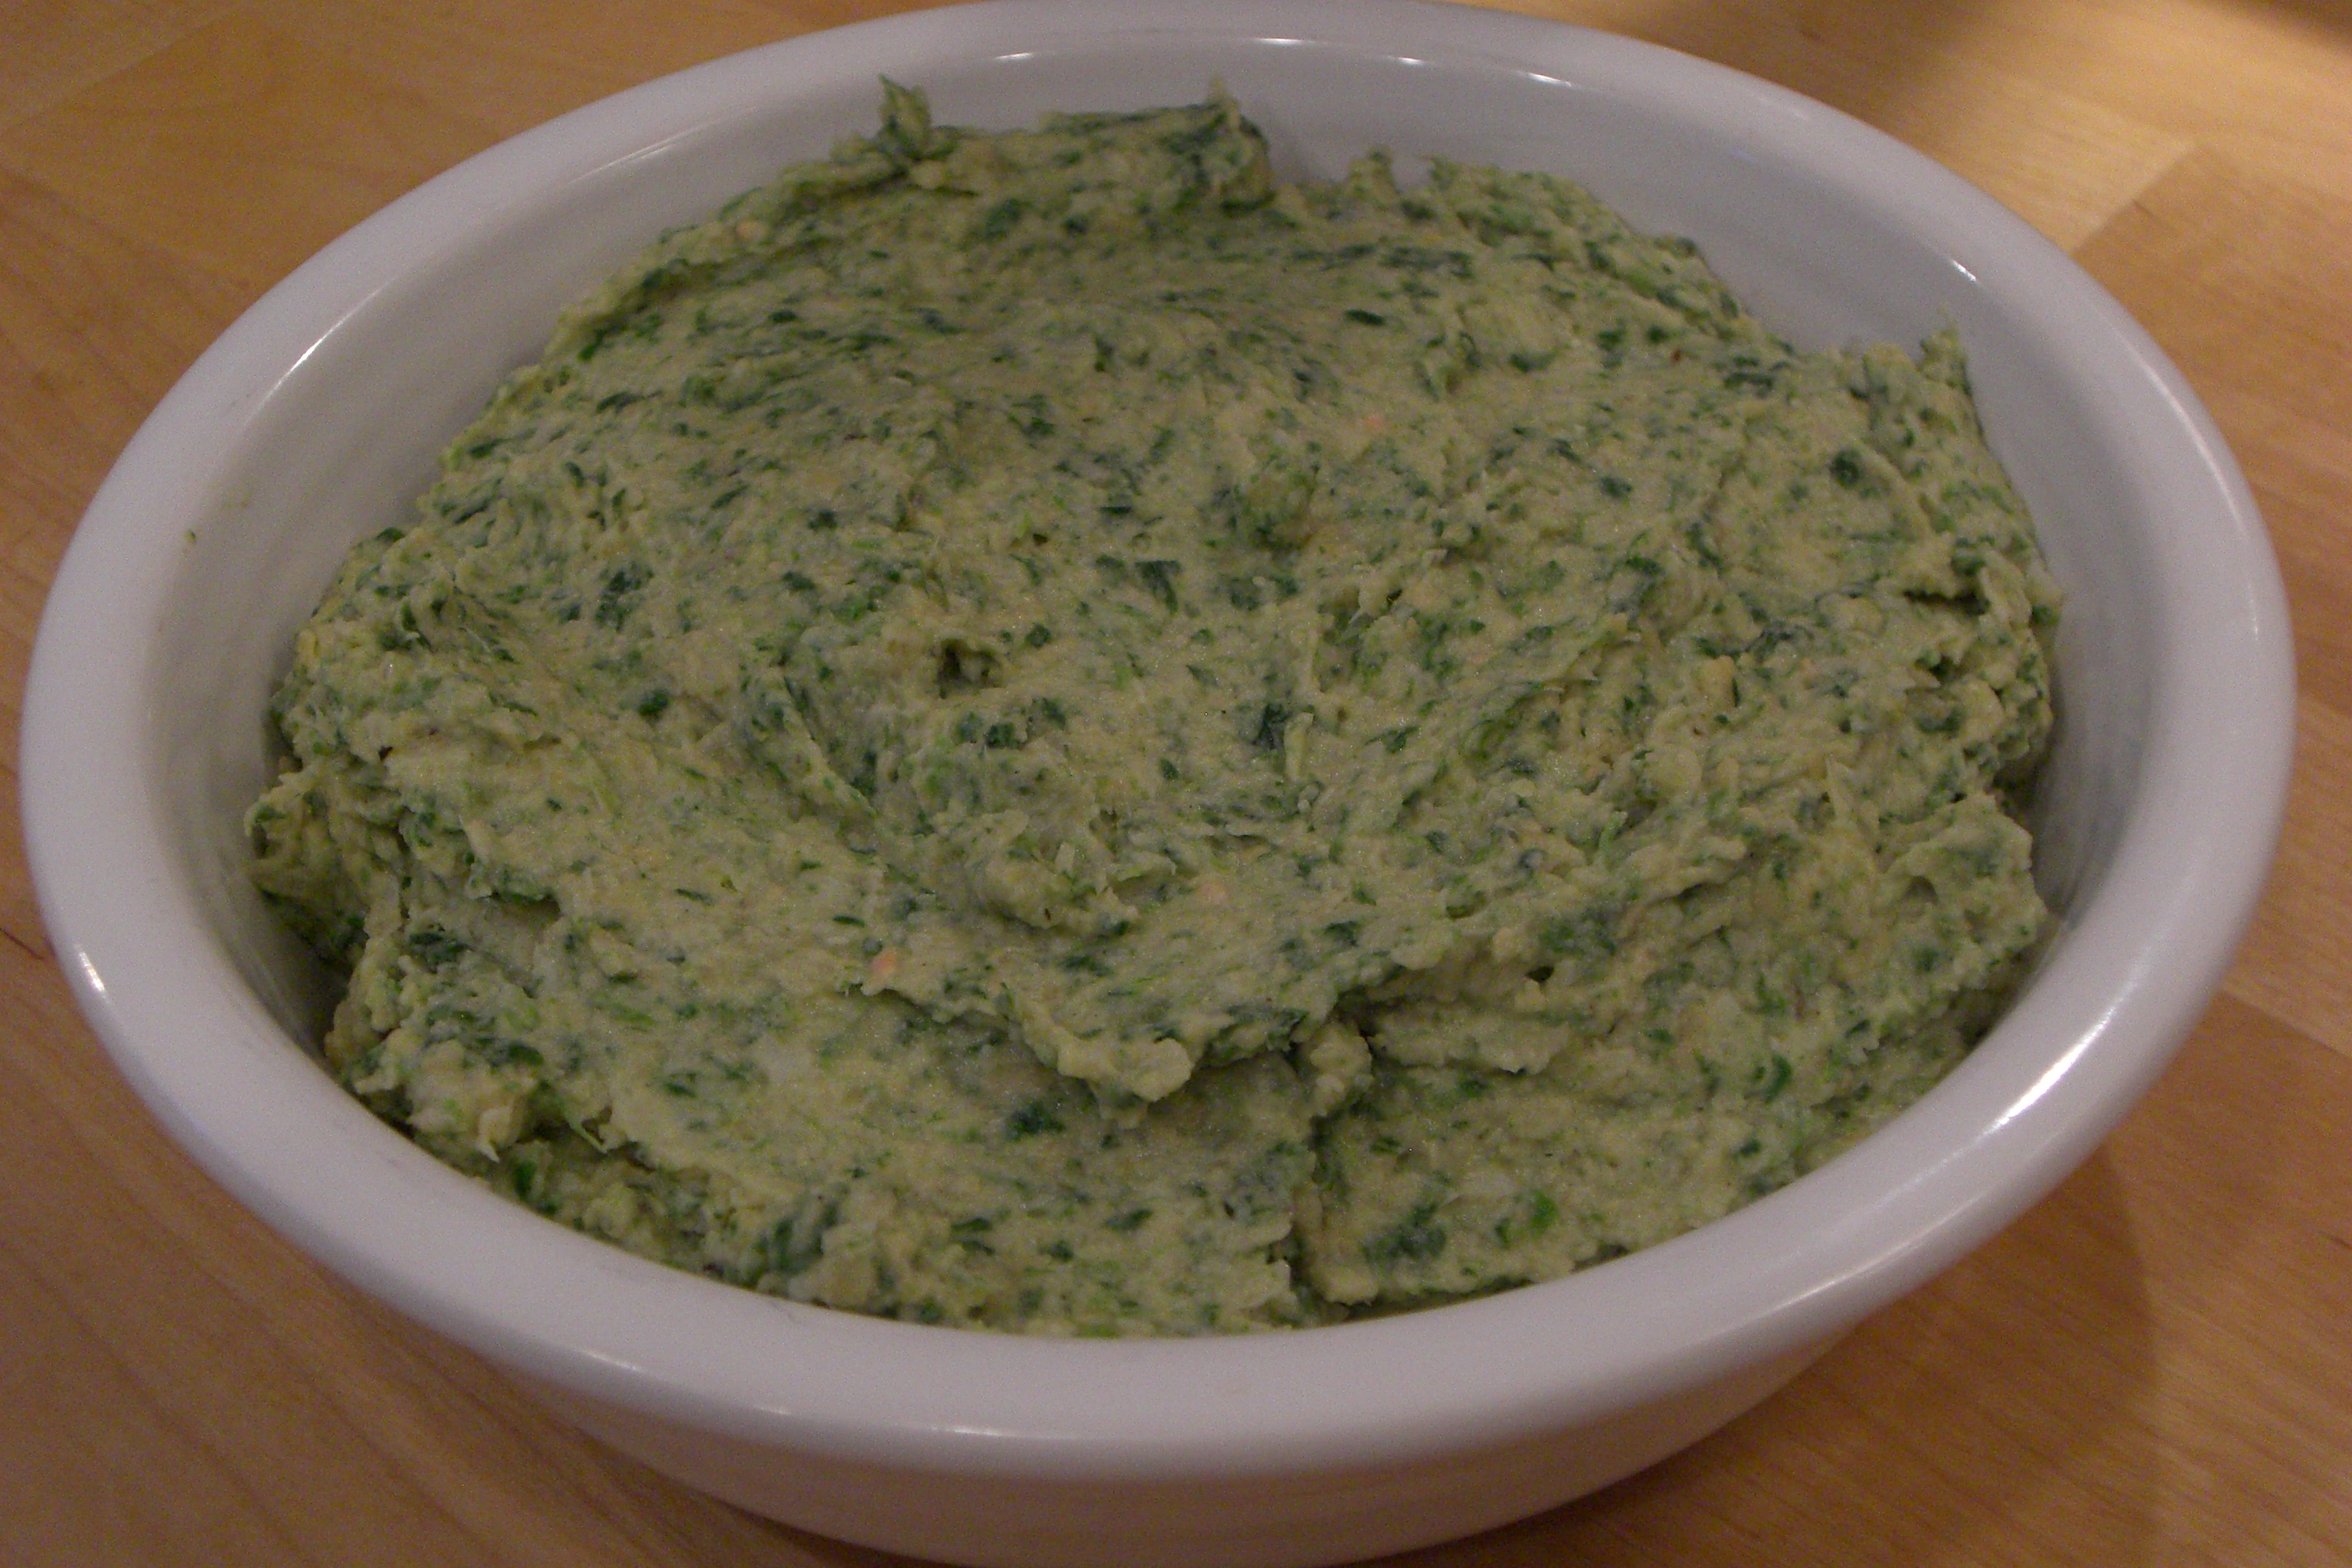 Spinach and artichoke hummus | Get Healthy With Heather